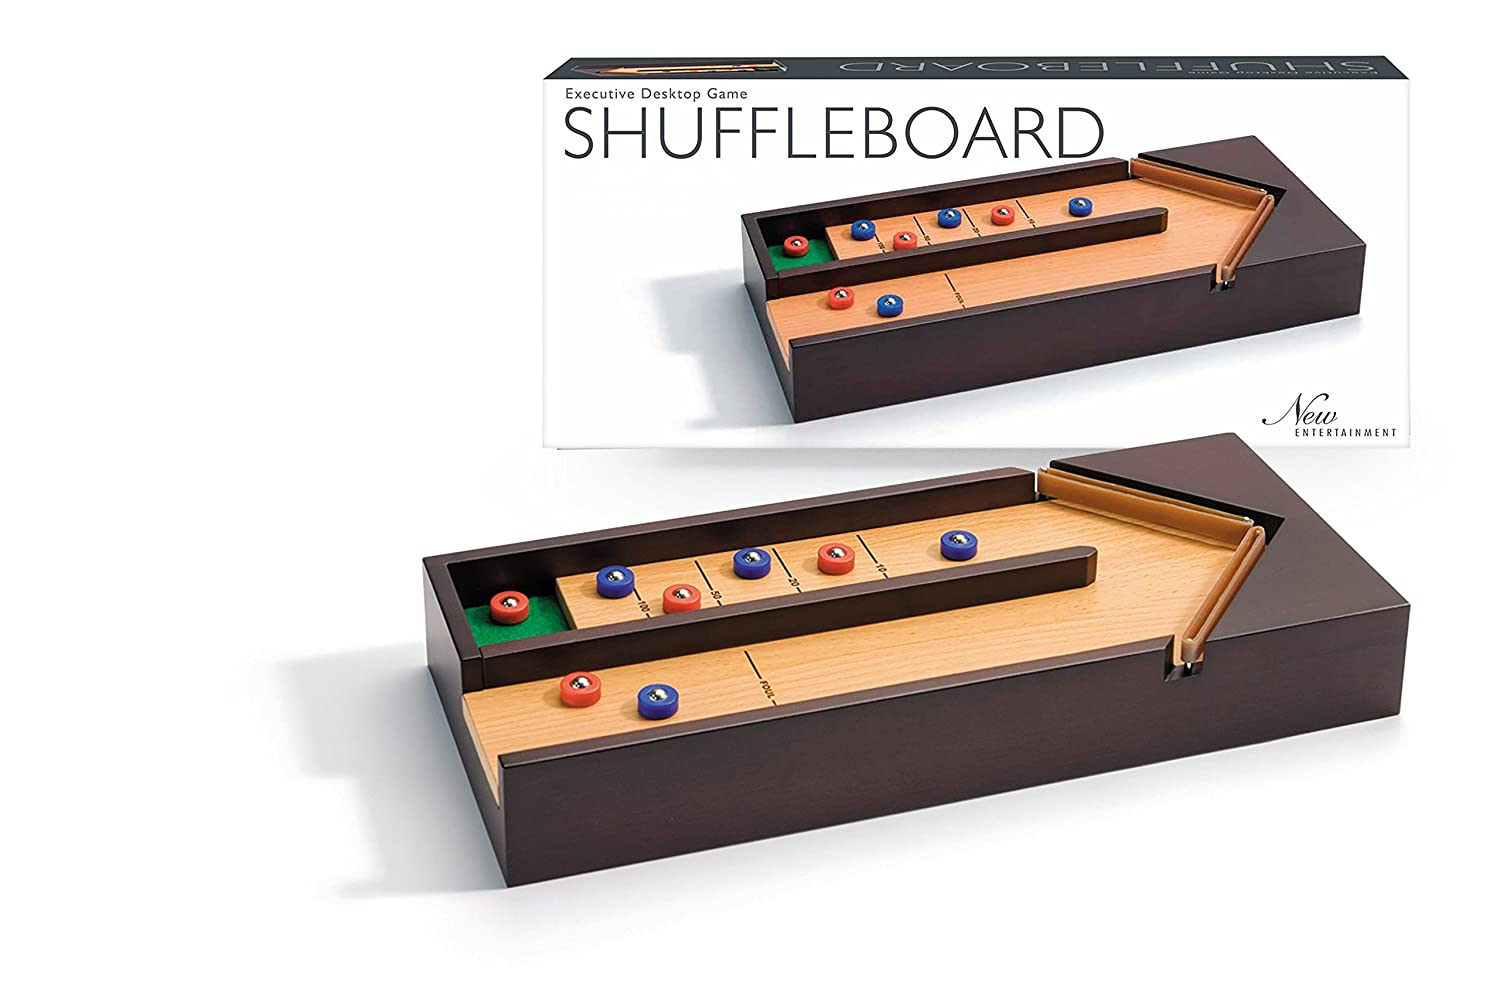 Shuffleboard: Executive Desktop Game